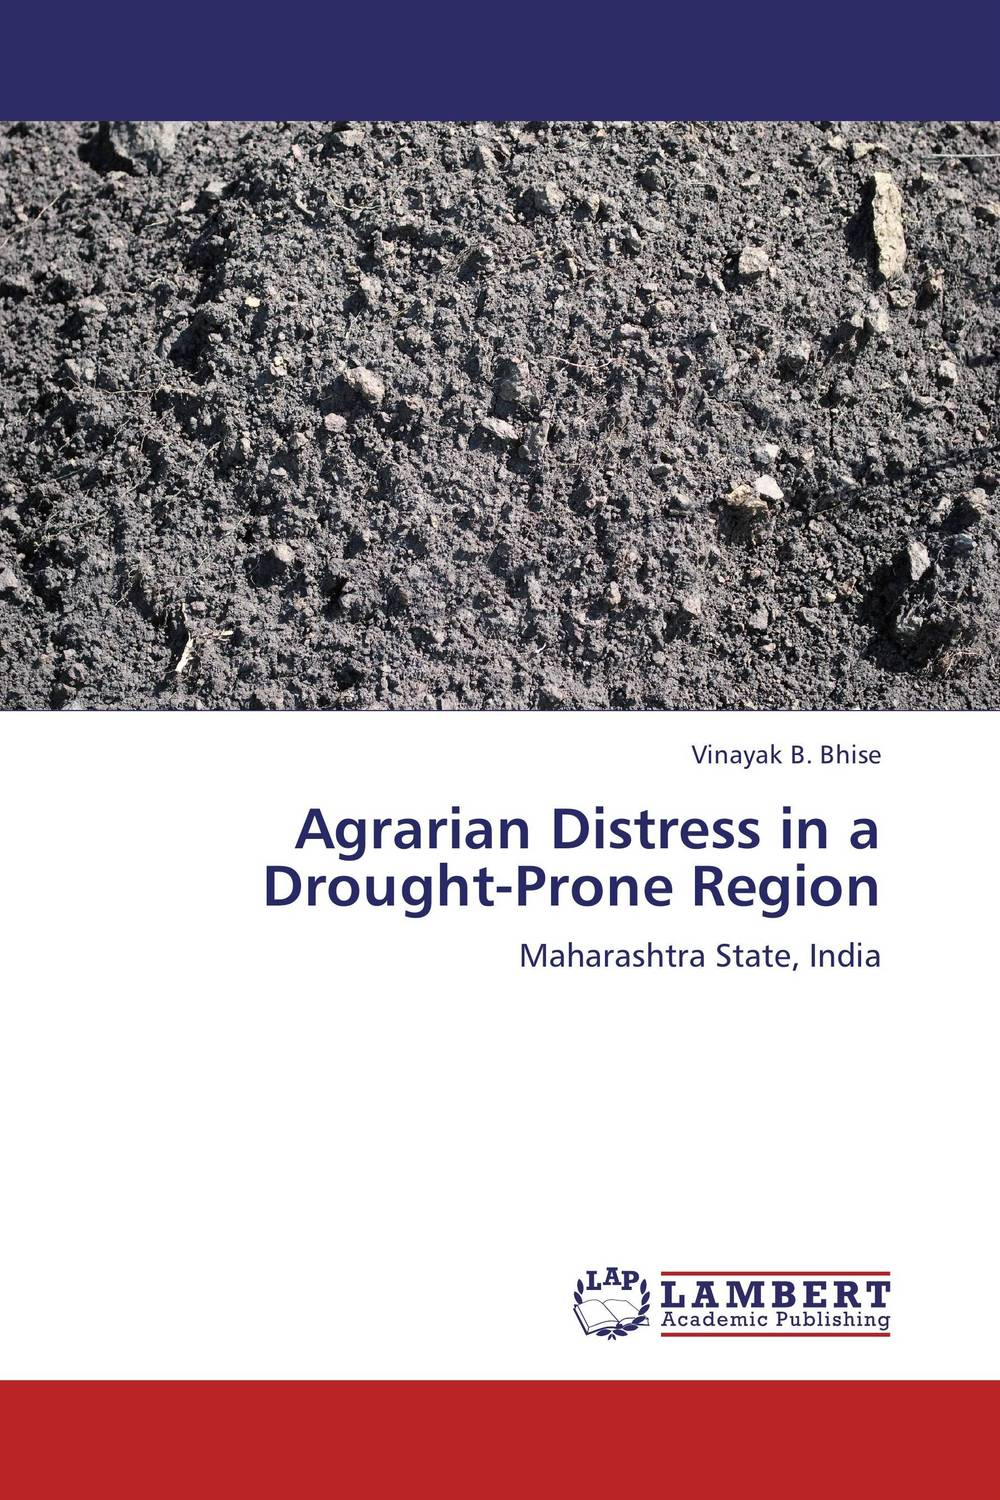 Agrarian Distress in a Drought-Prone Region damsel in distress